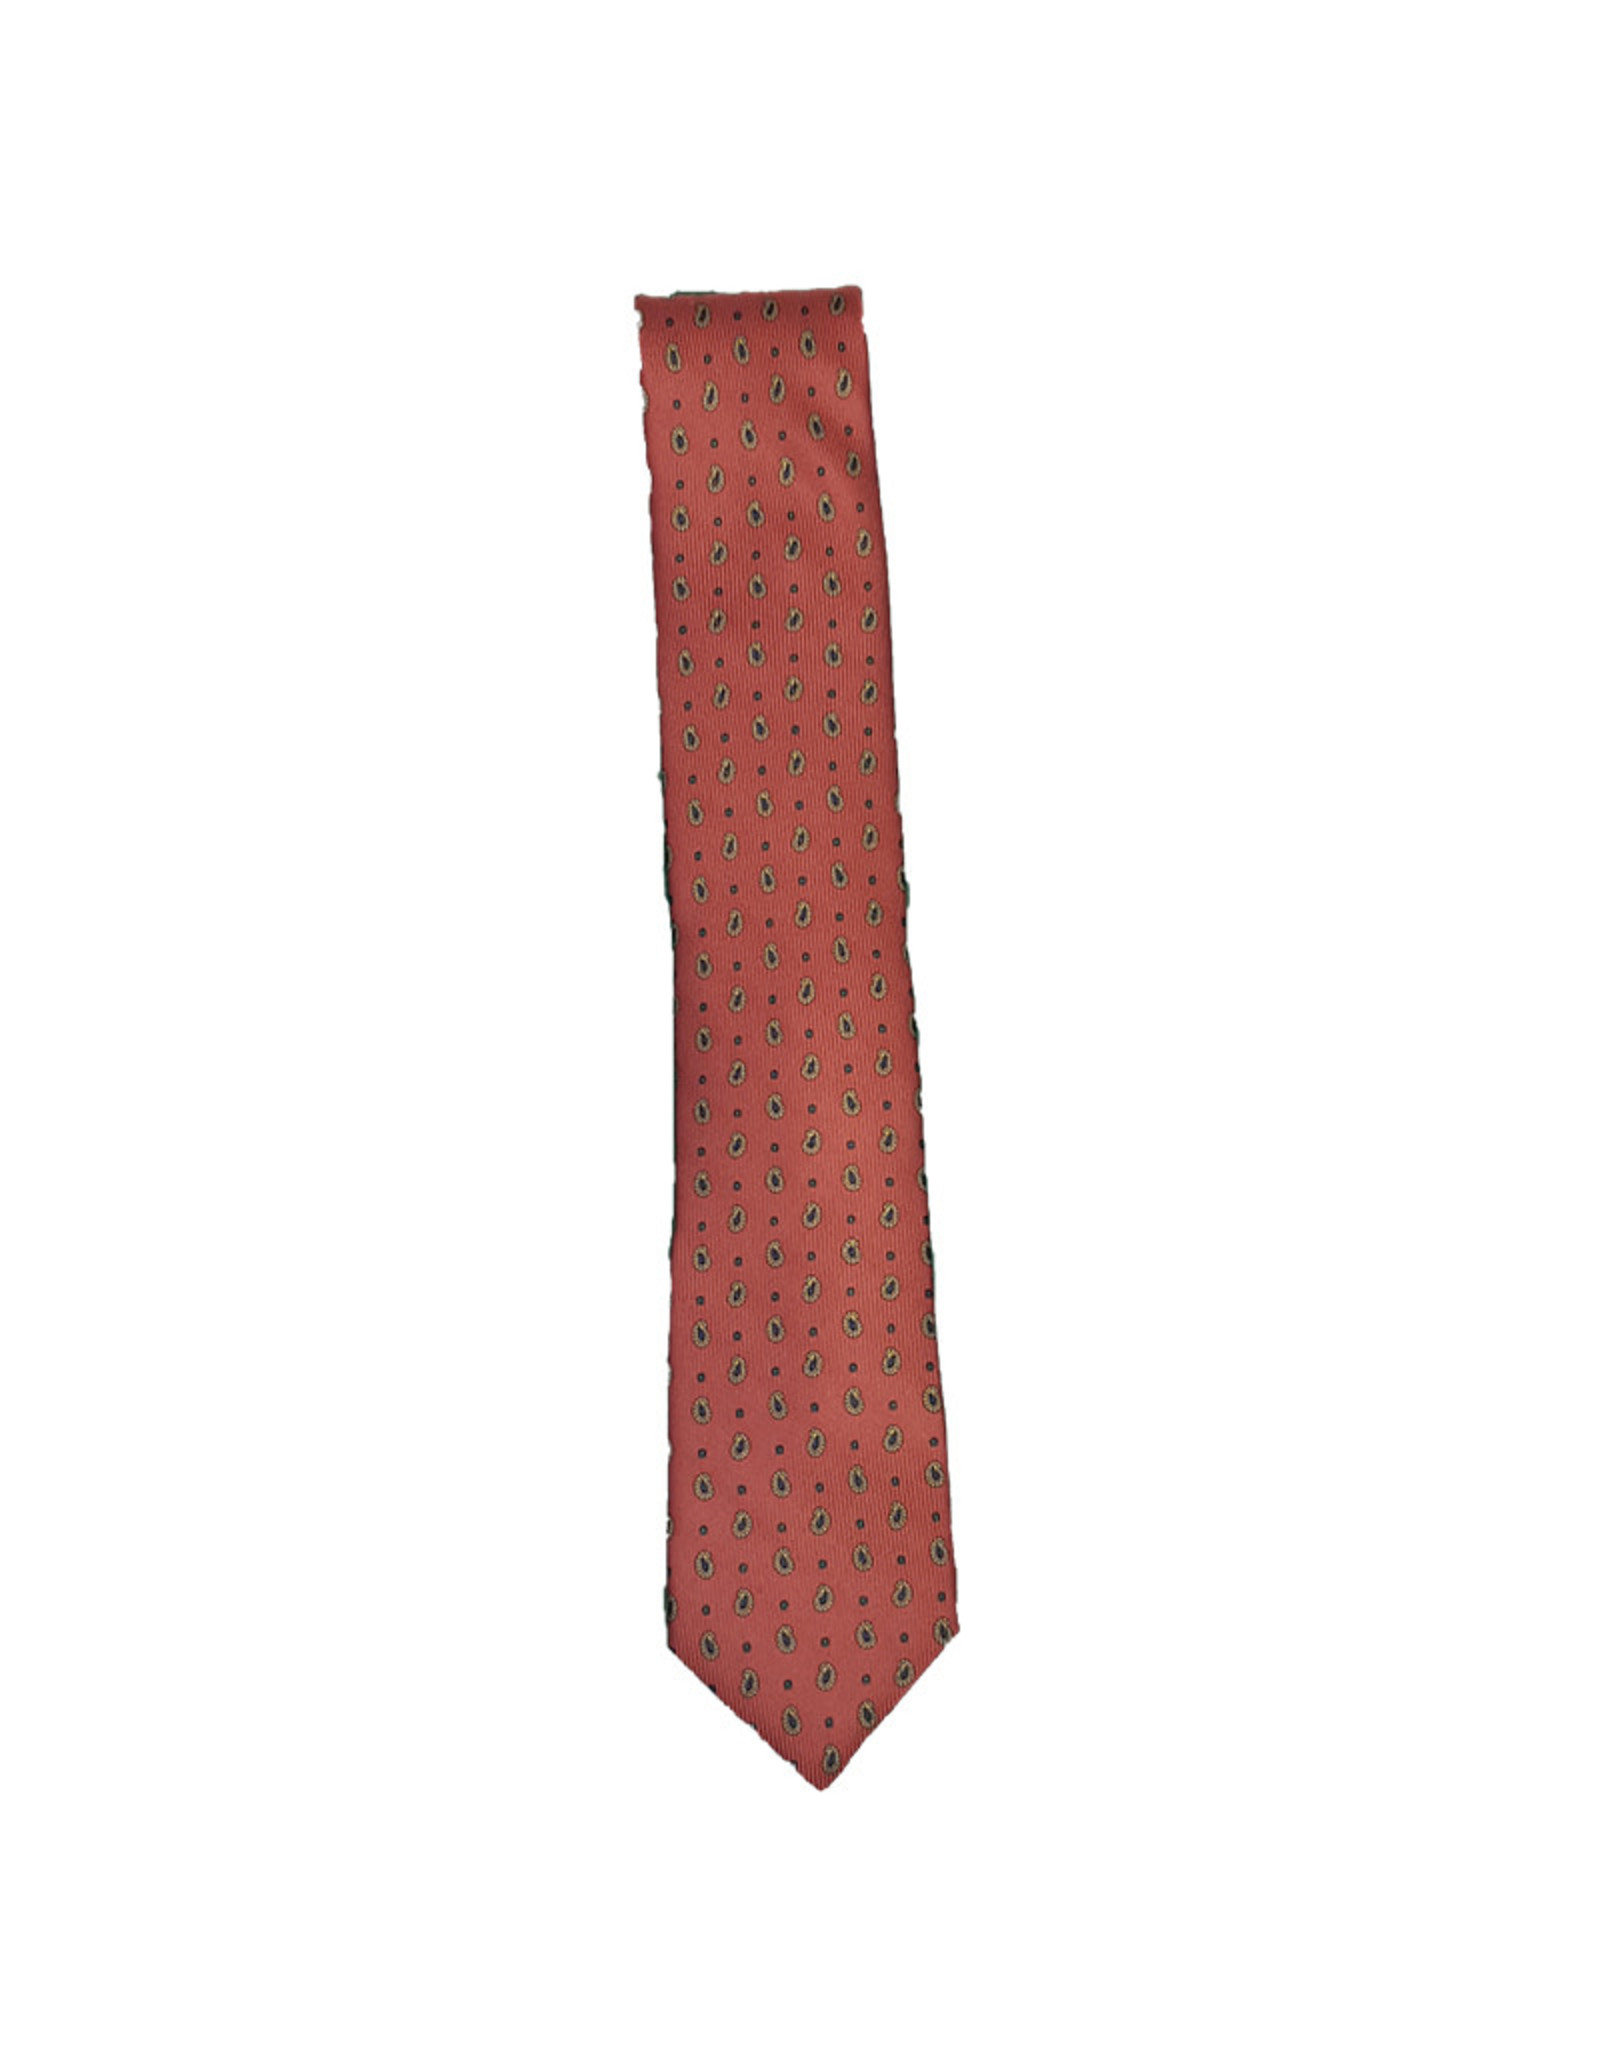 Anthime Mouley Sandmore's das rood paisley 13104/3